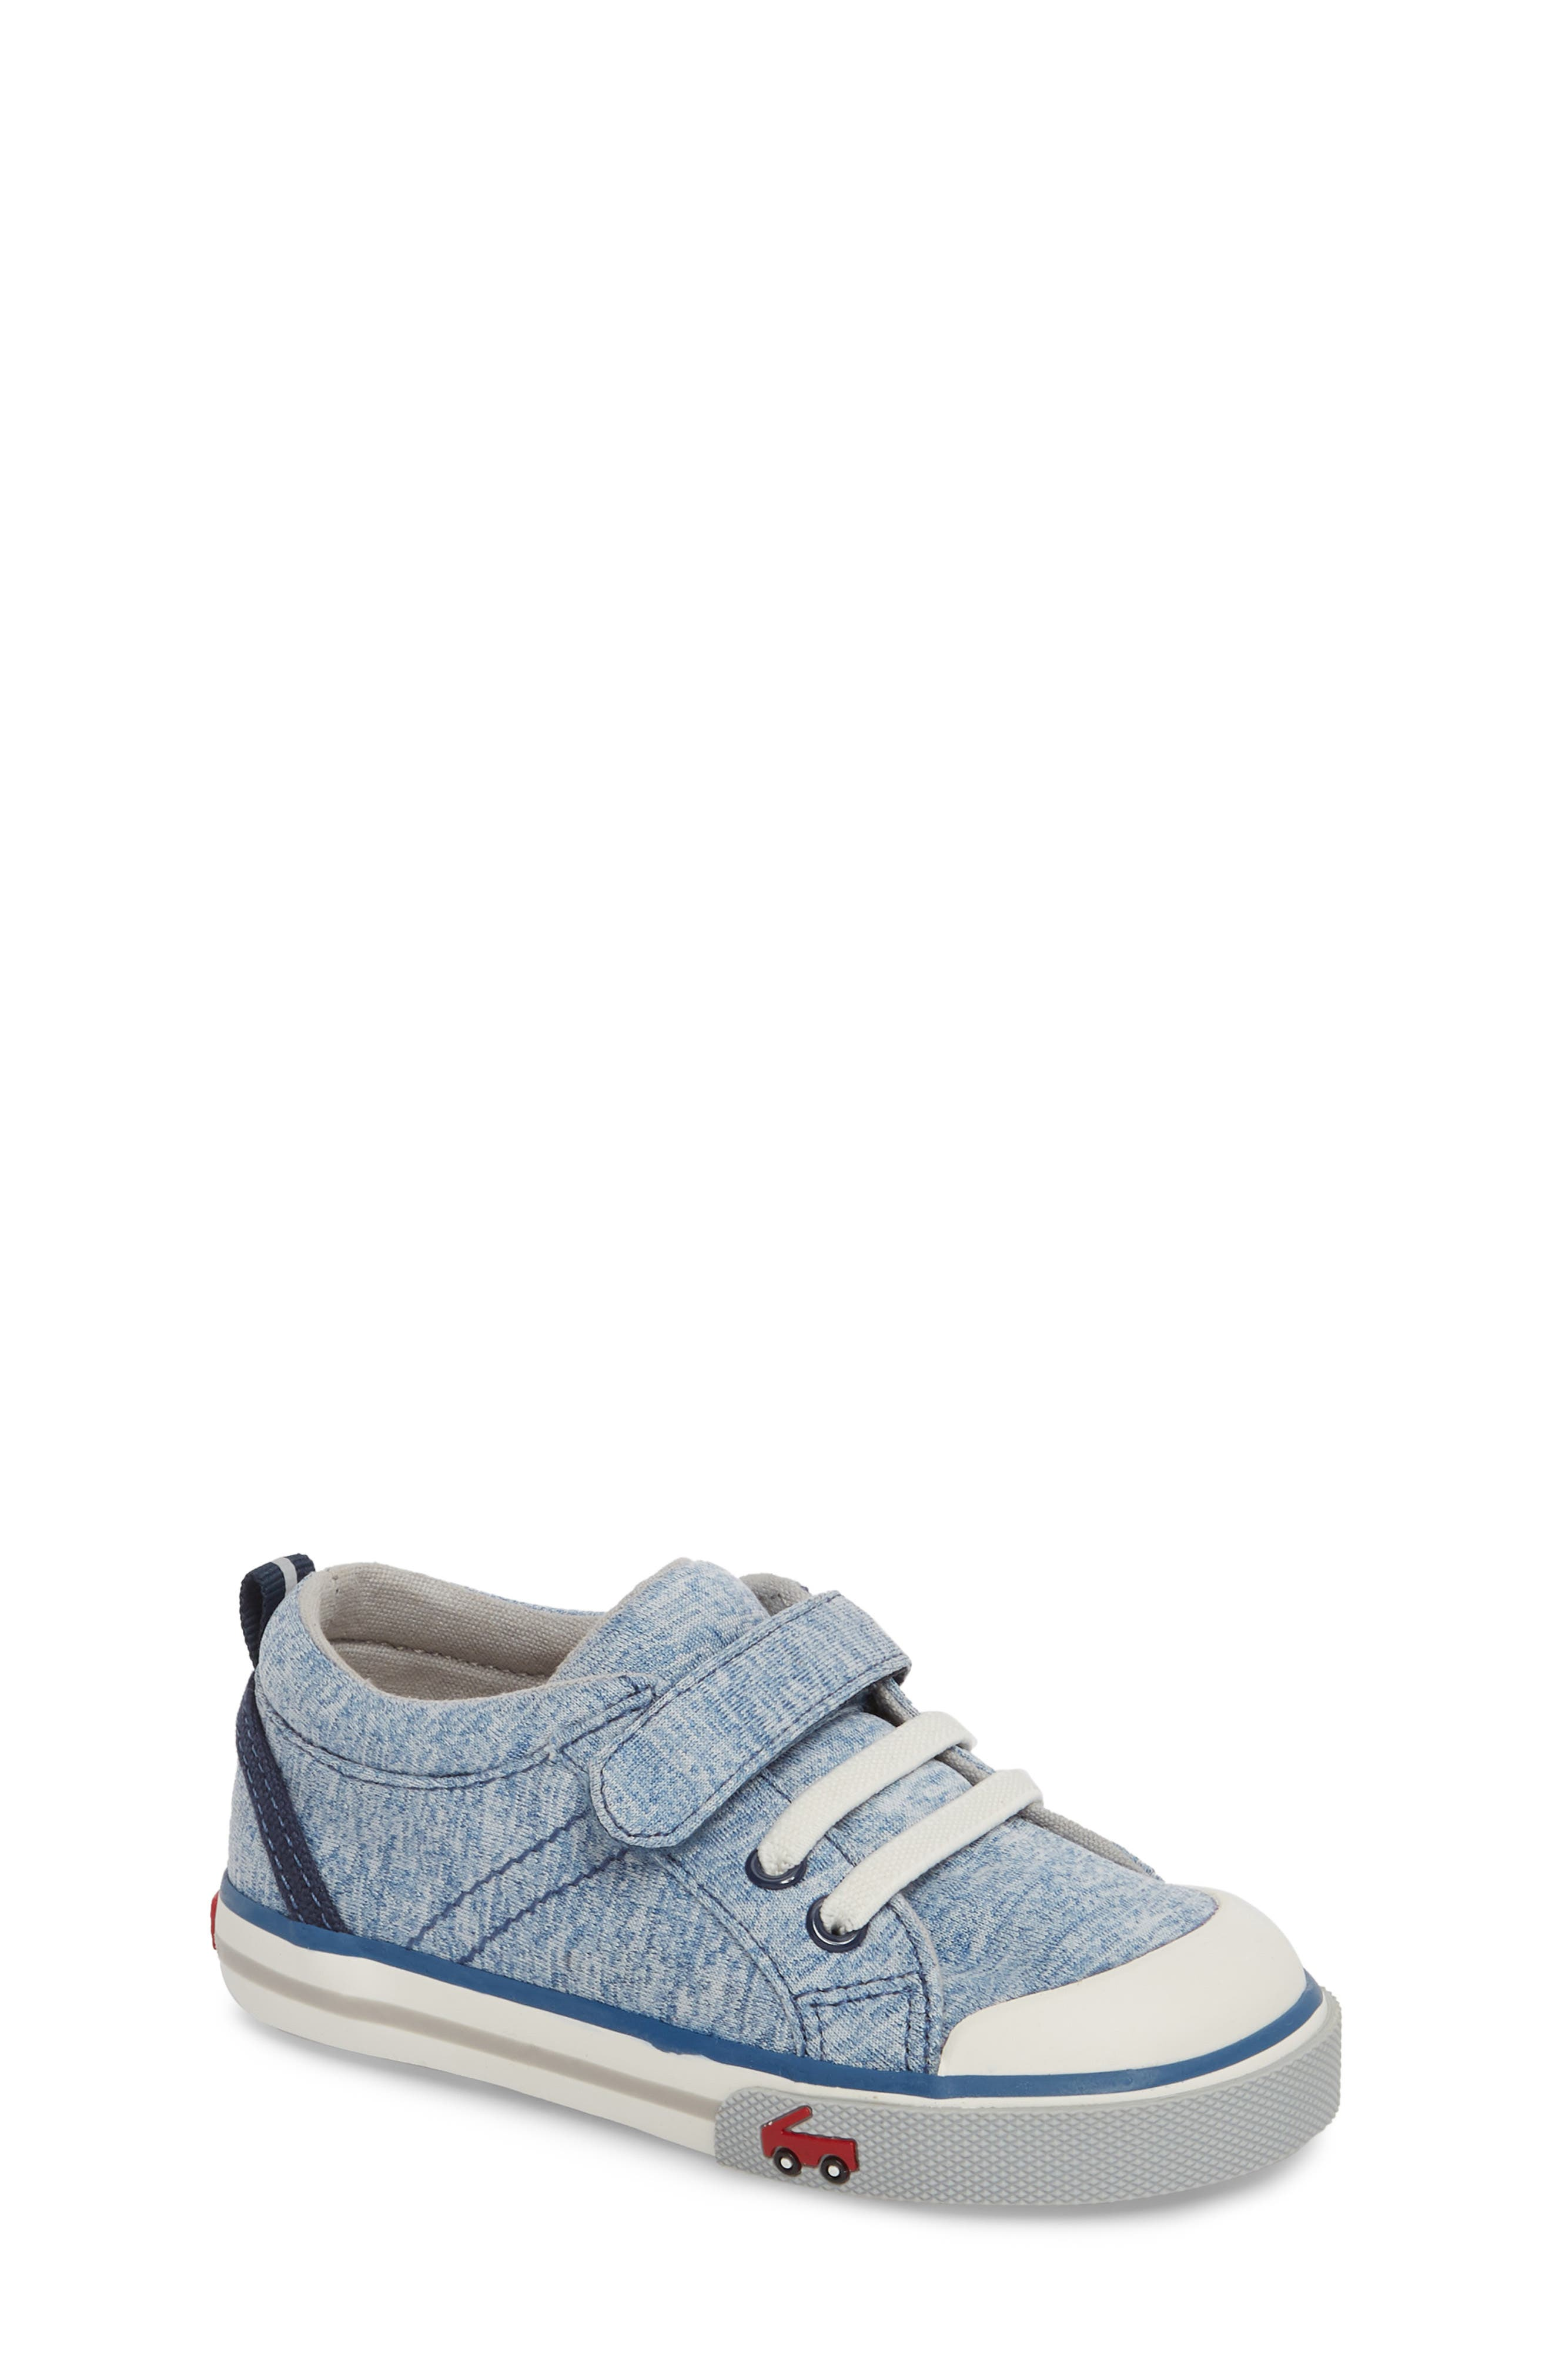 Tanner Sneaker,                         Main,                         color, Blue Jersey